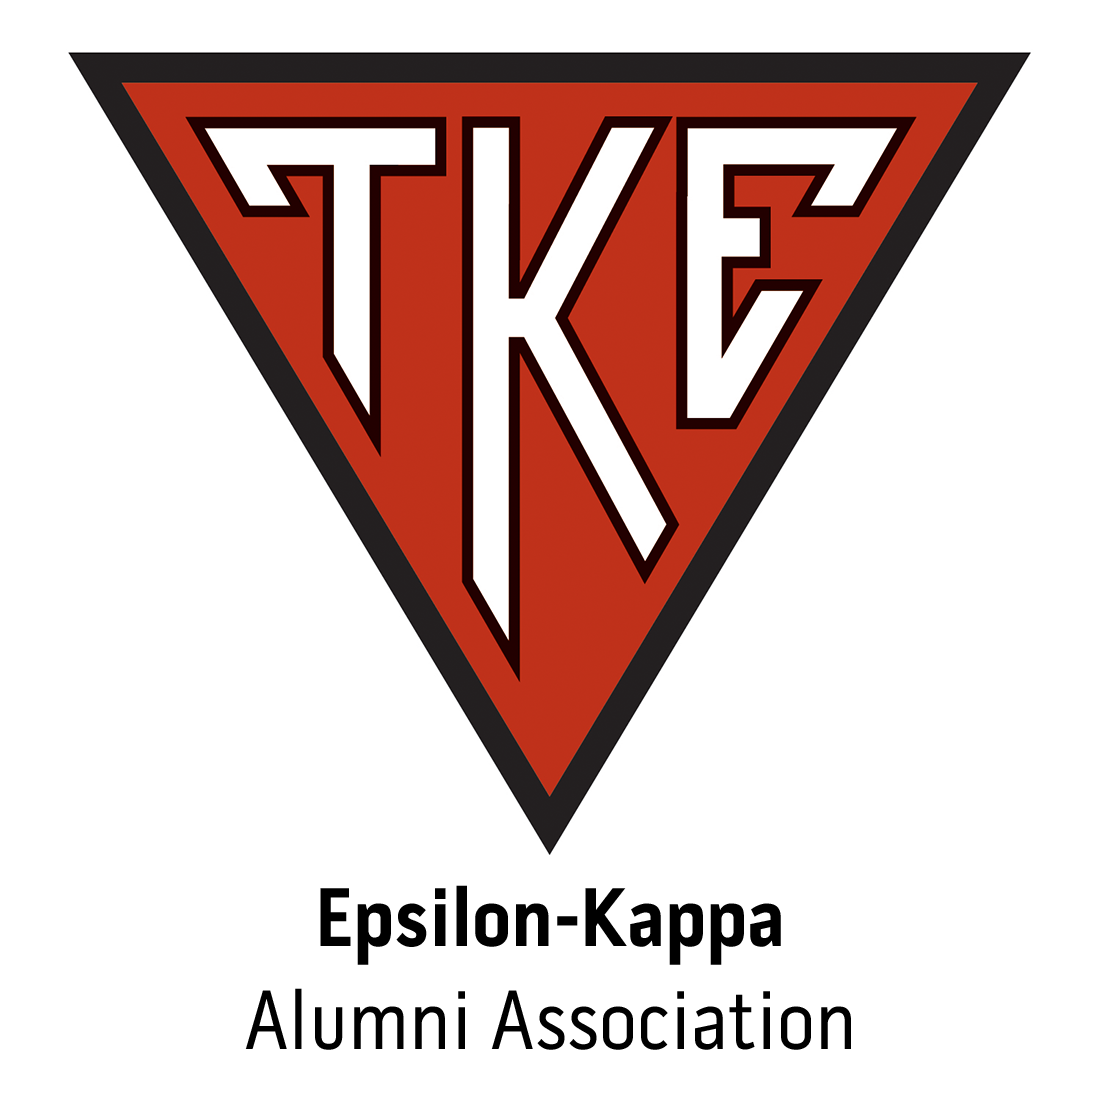 Epsilon-Kappa Alumni Association at Loyola University Chicago